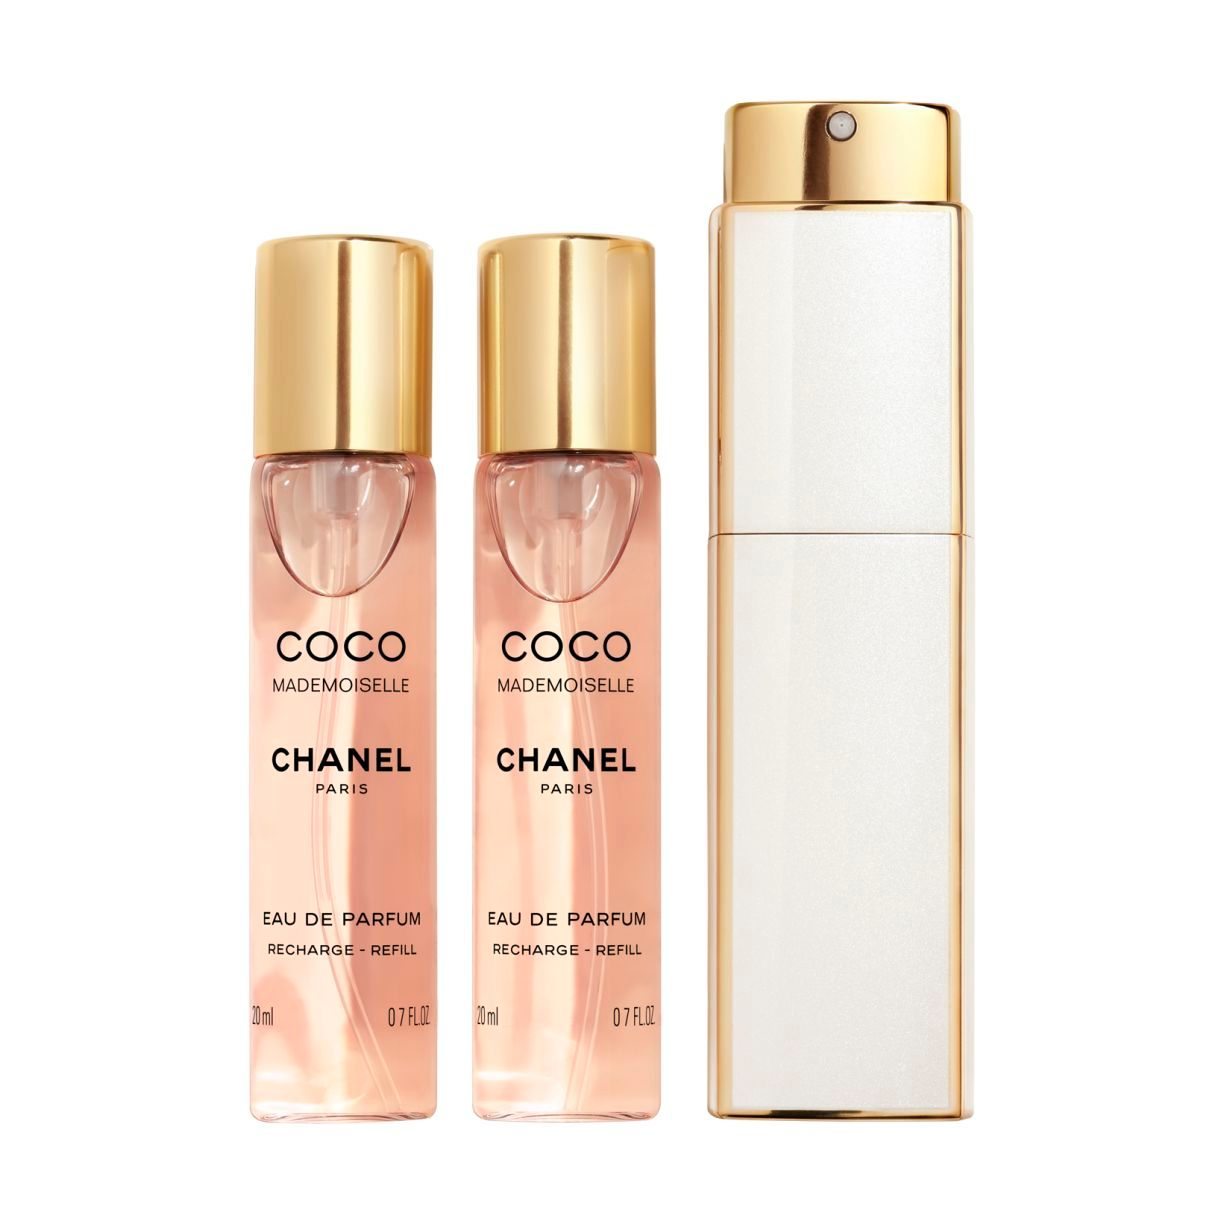 Bath Shower Gel Coco Mademoiselle Chanel Official Site